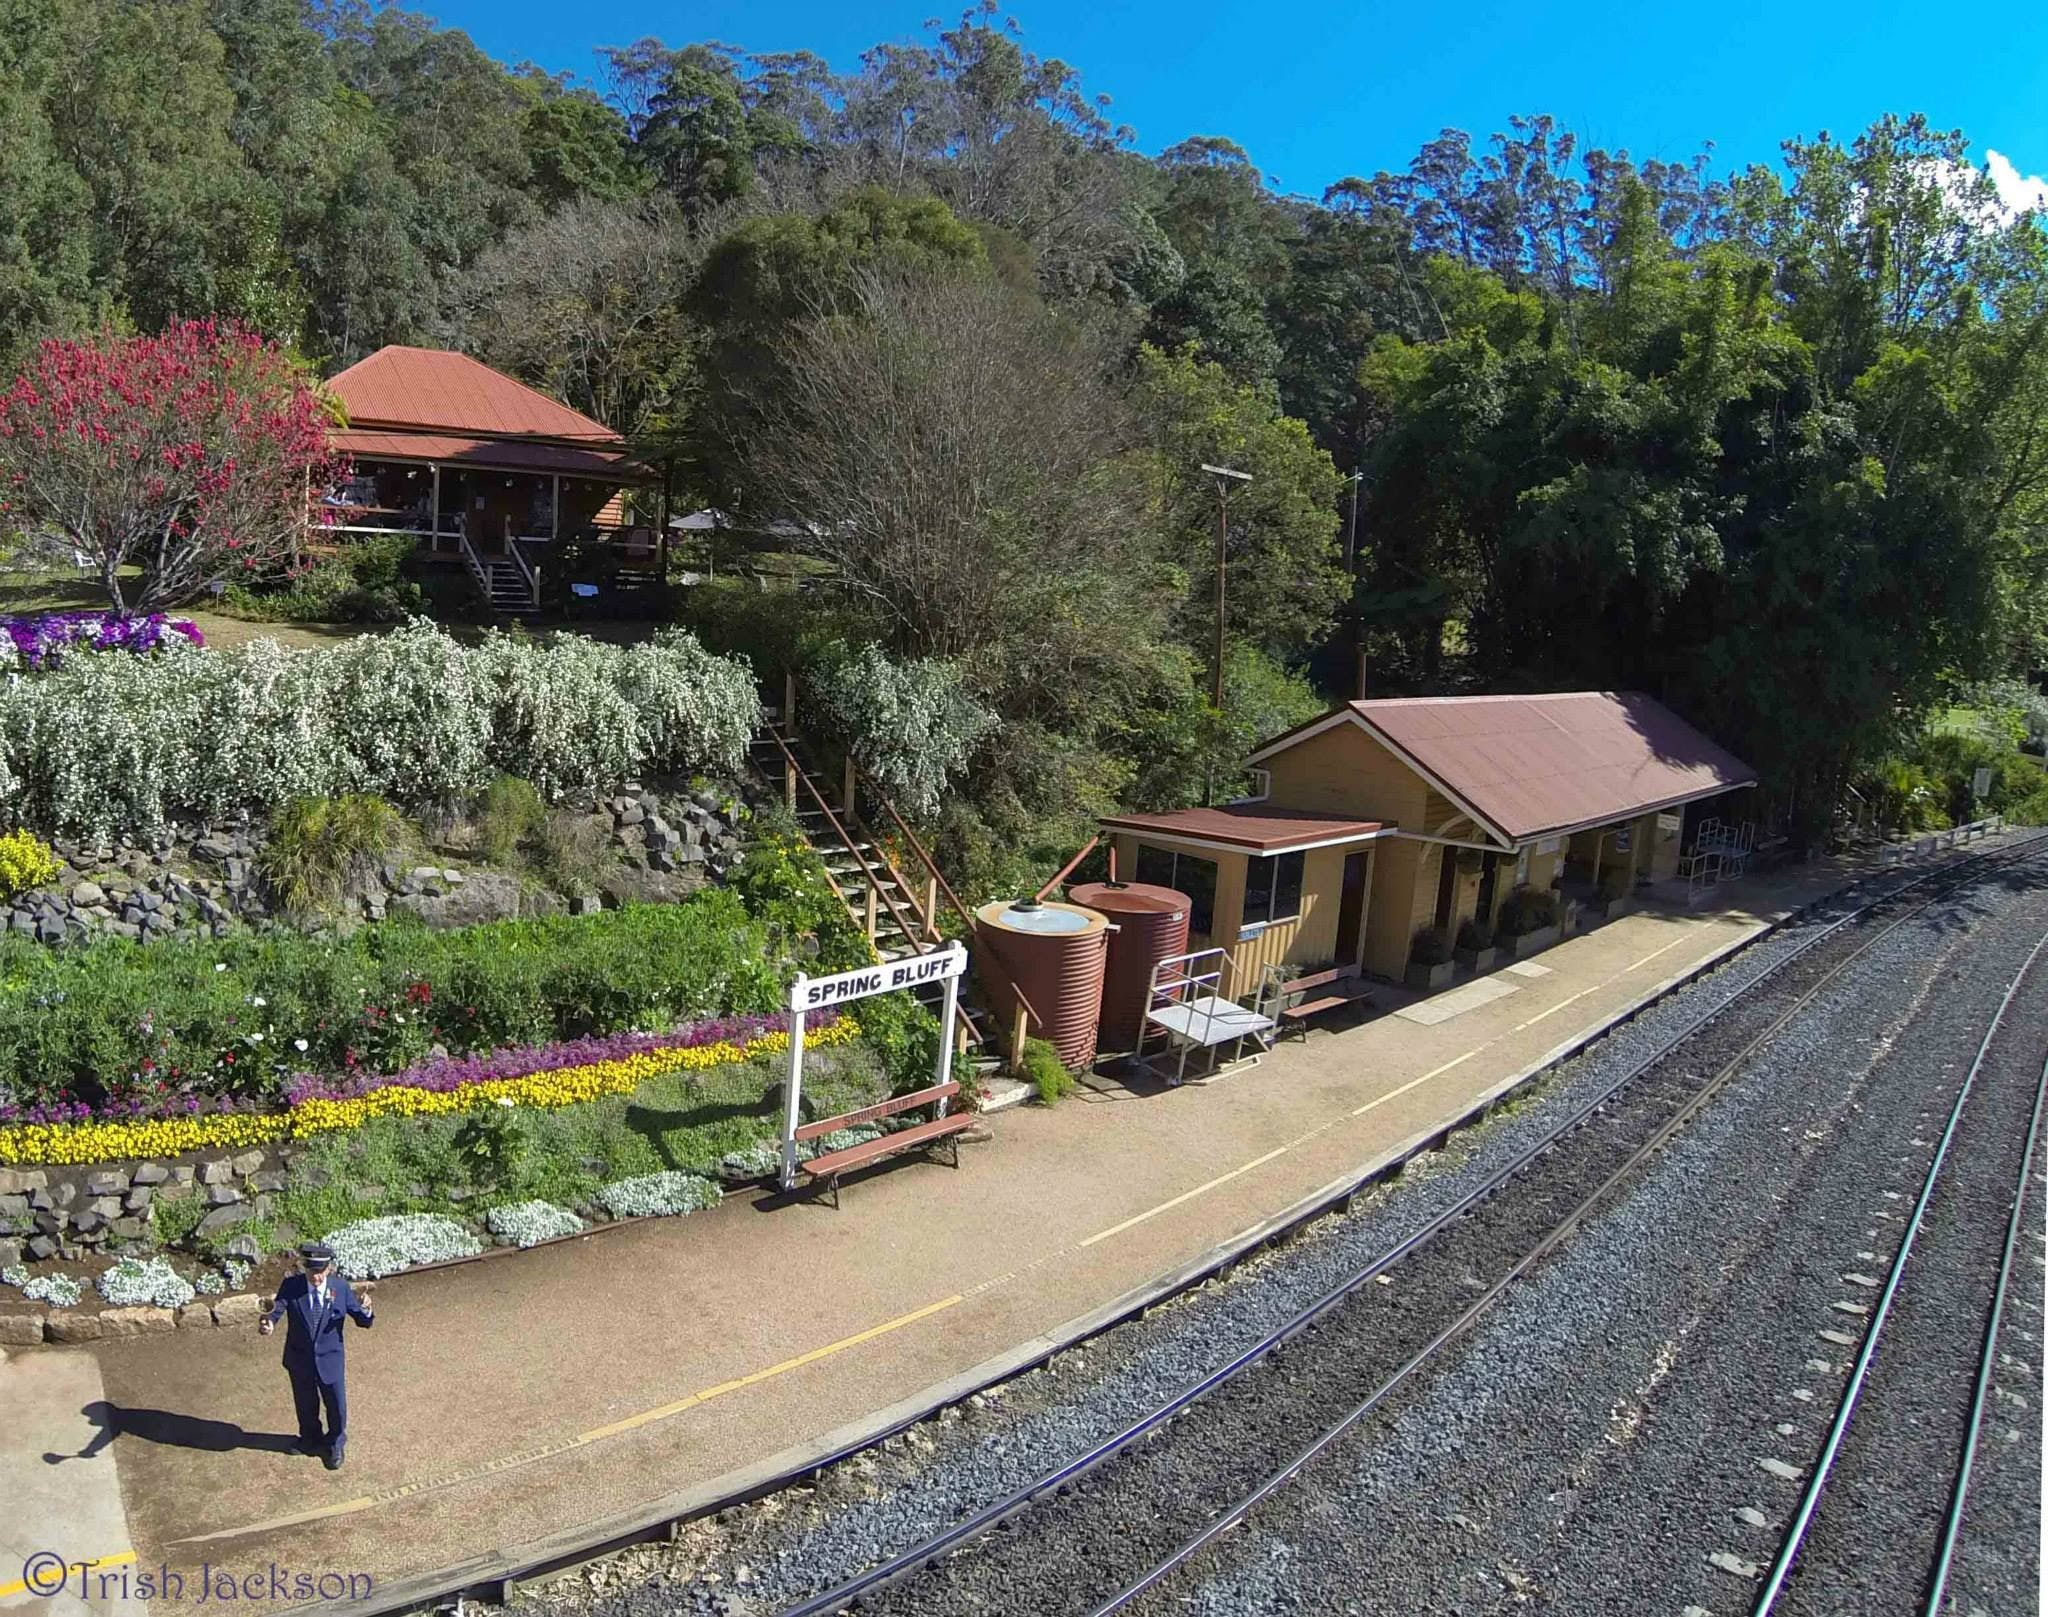 Spring Bluff Railway Station - Accommodation Noosa